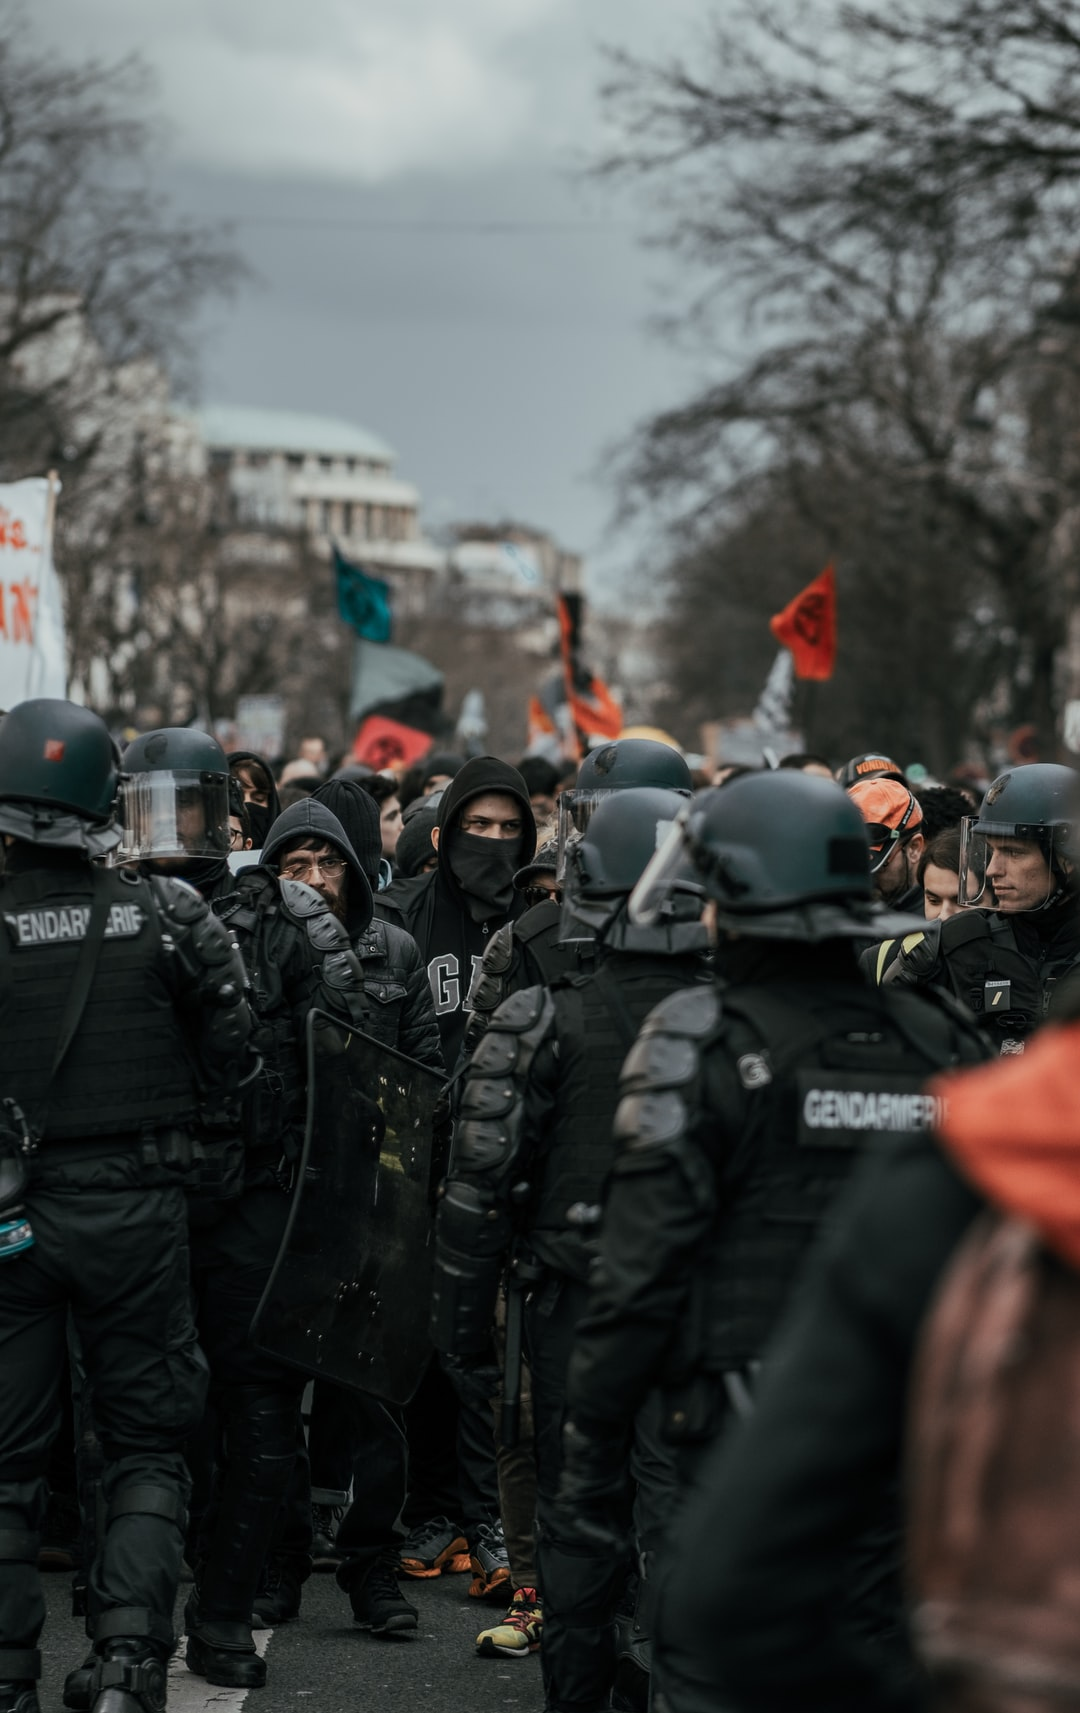 Man facing the police in the streets of Paris. This is taking place during a protest against Macron's government's use of the law 49.3